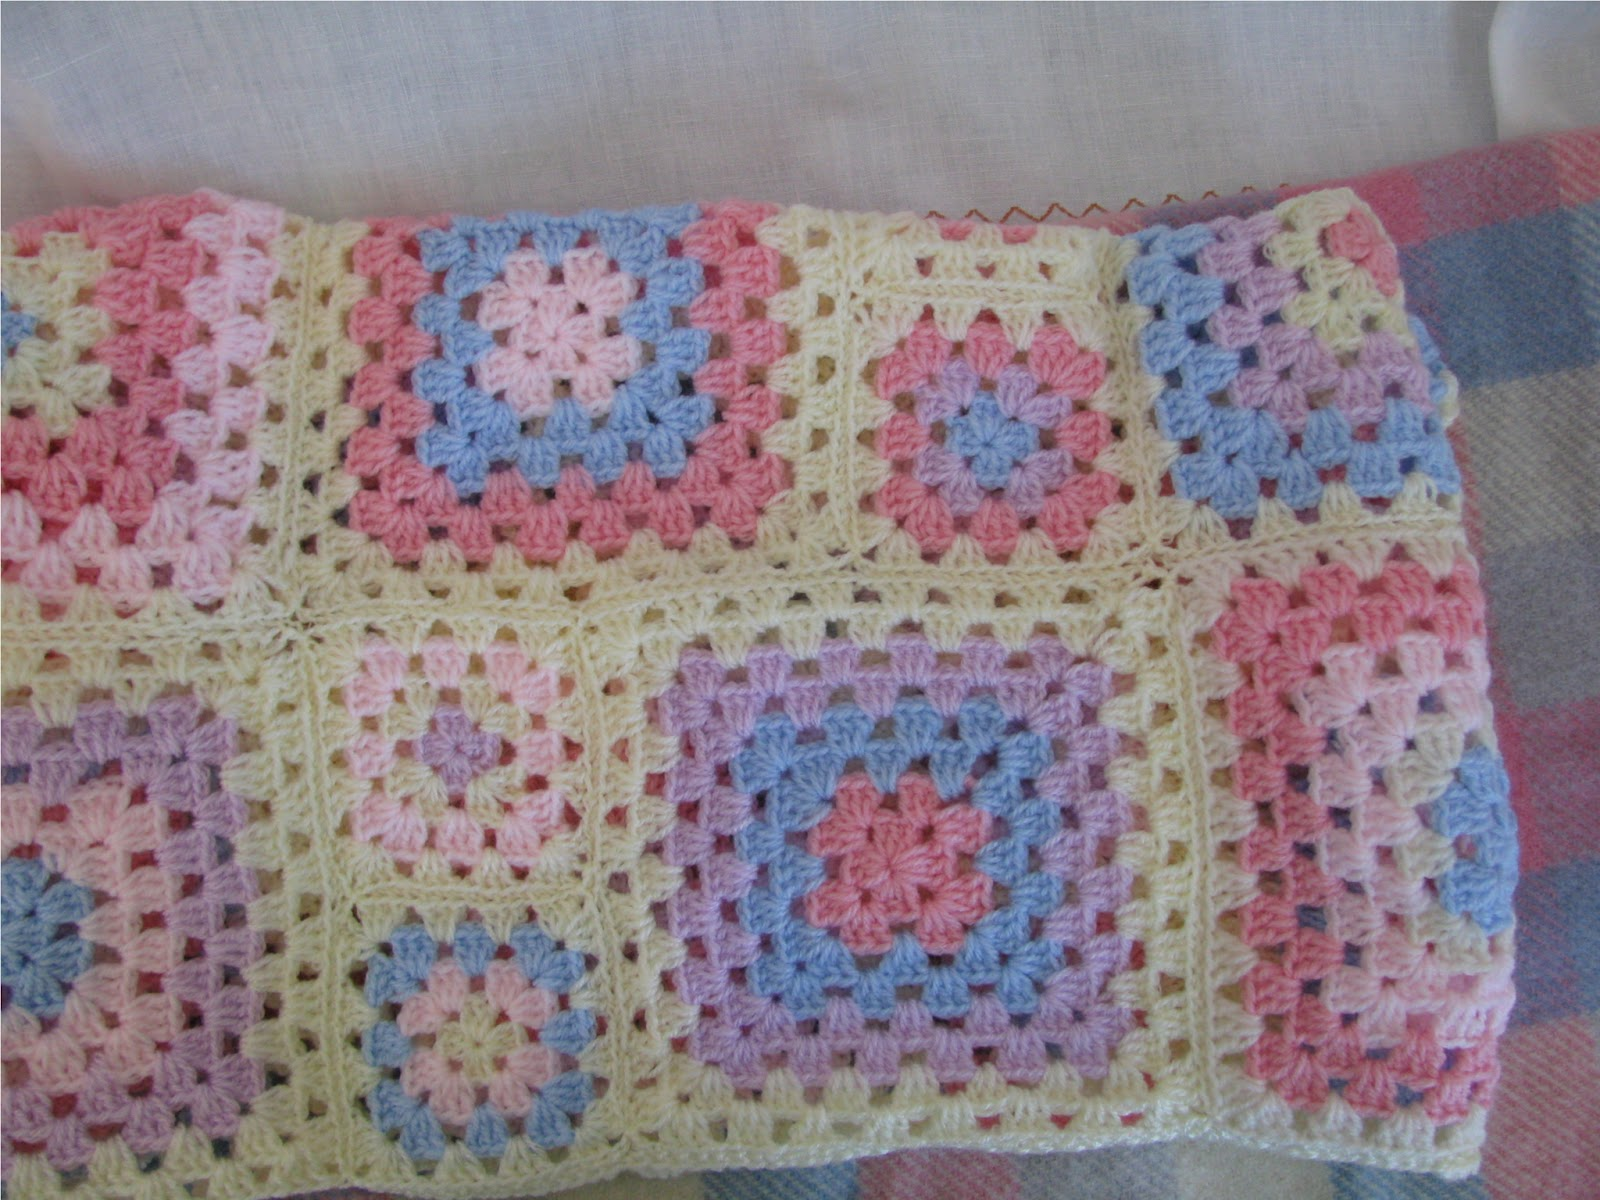 Crochet A Baby Blanket : Crocheted Baby Blanket Bed Mattress Sale